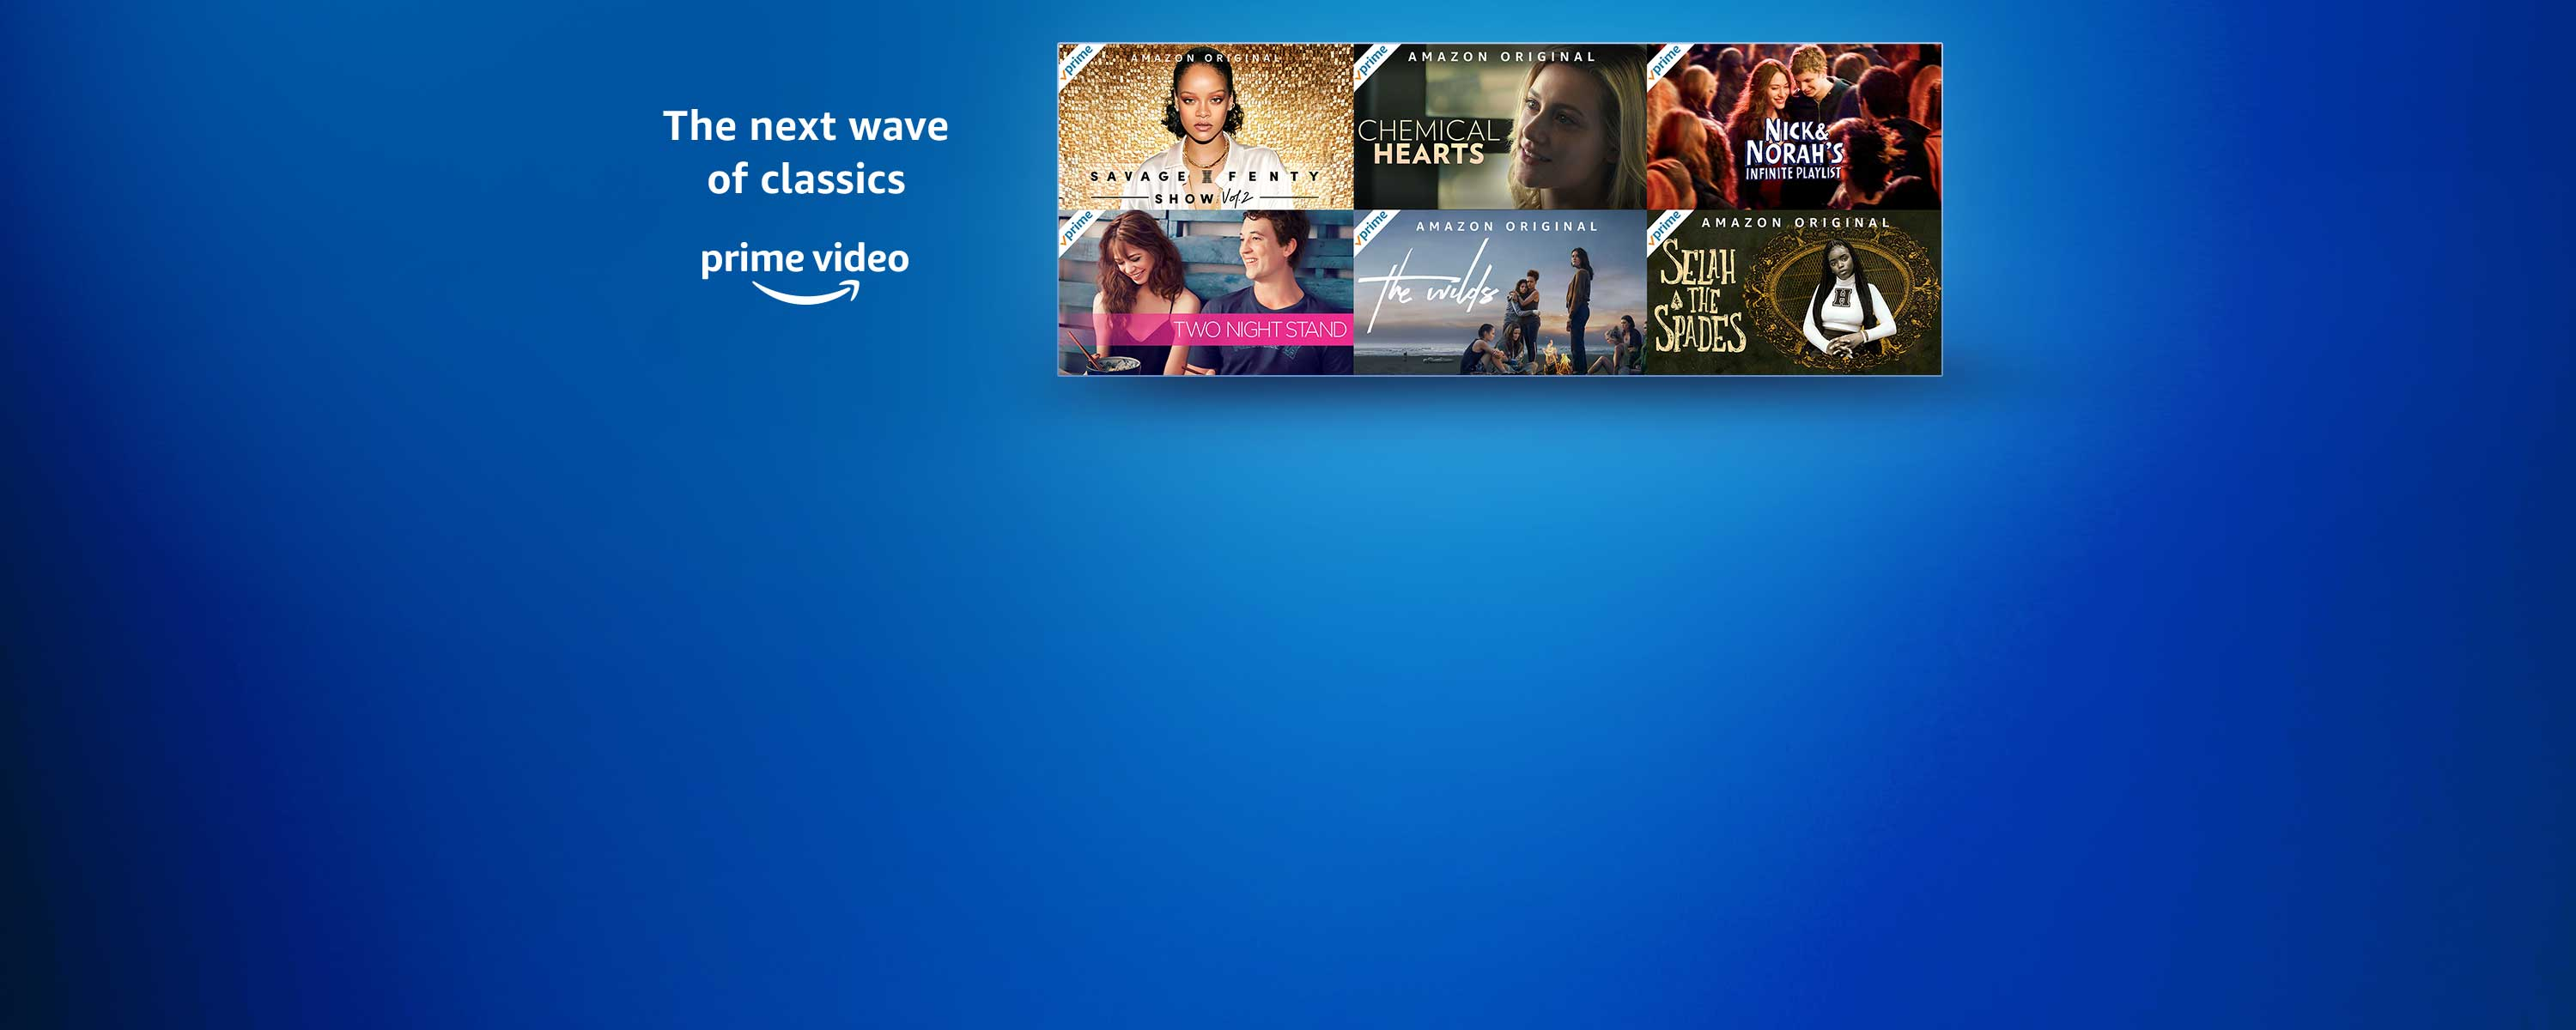 More streaming on Prime Video